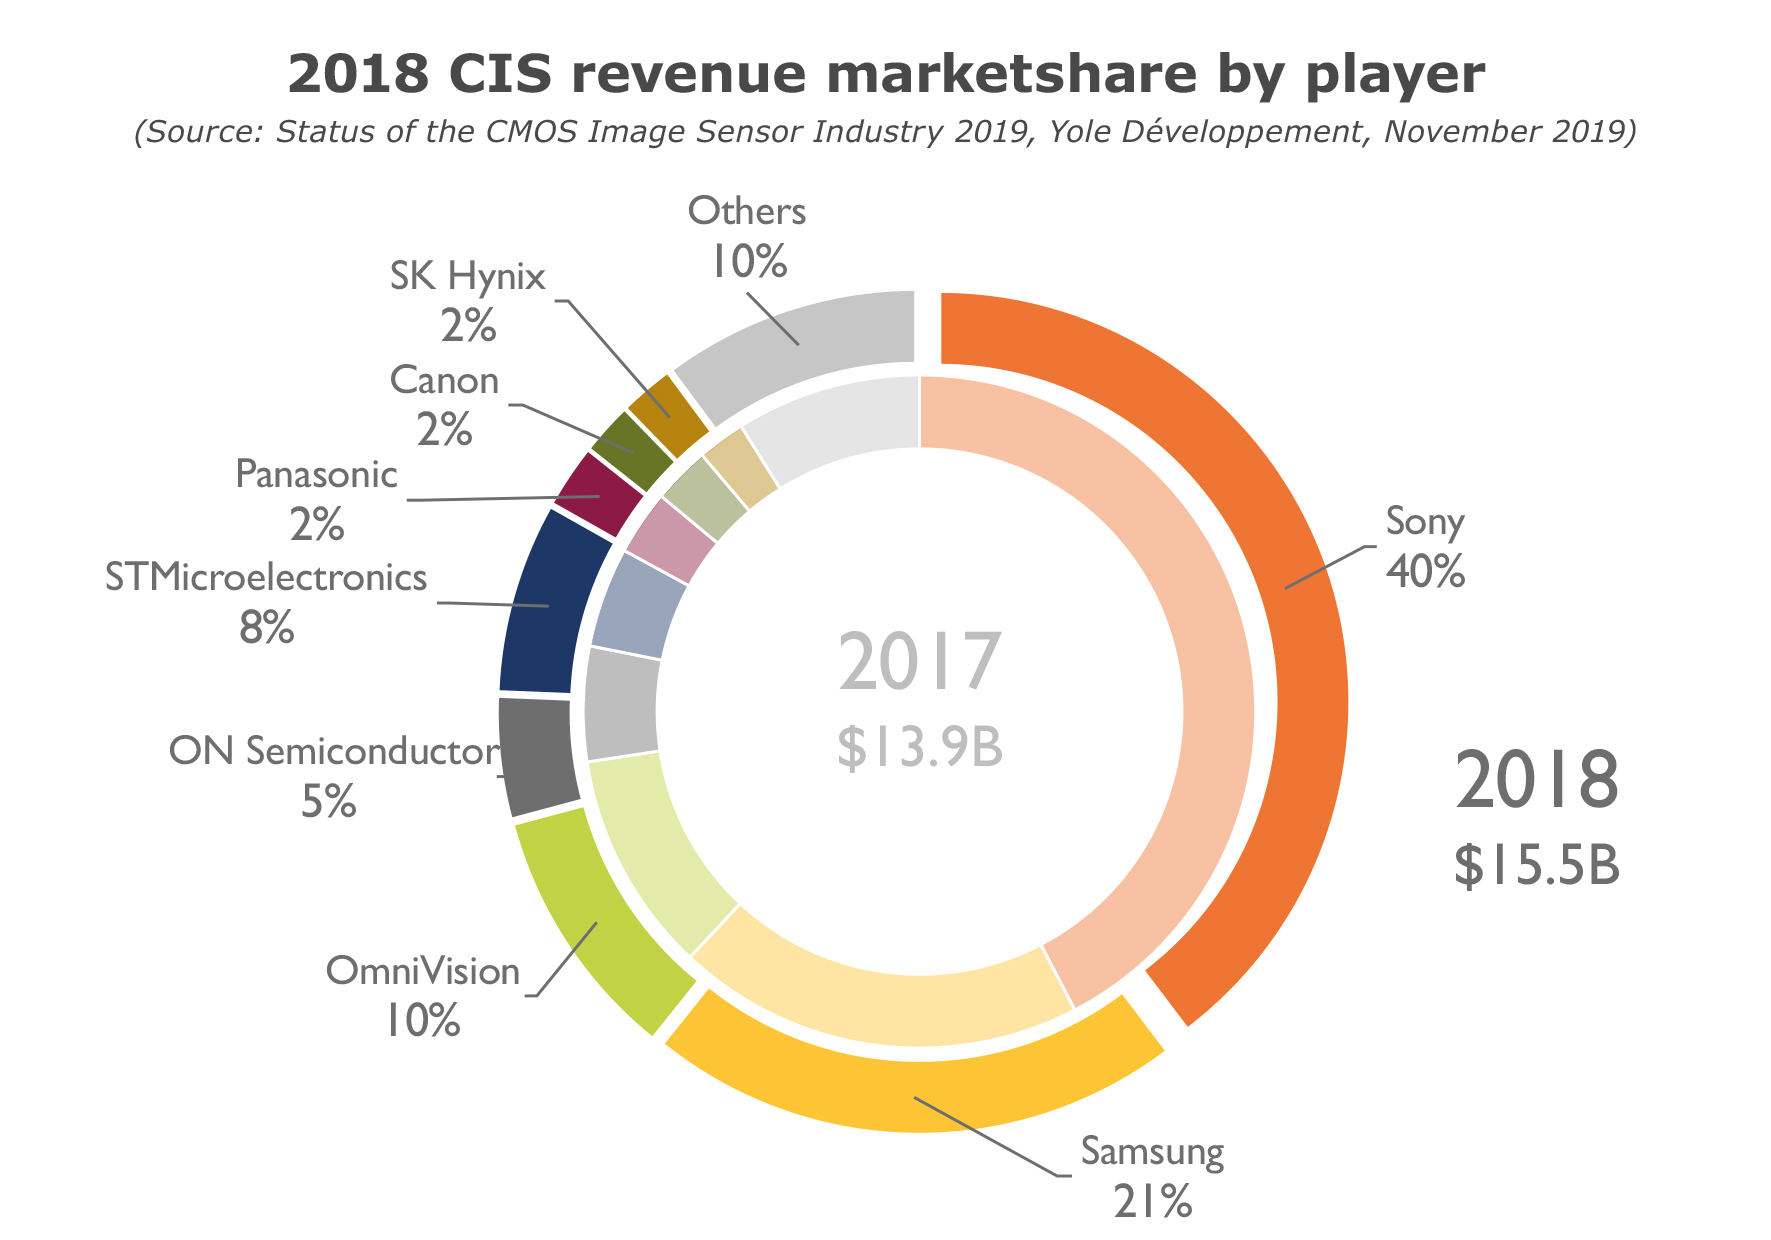 YD19057-2018 CIS revenue marketshare by player